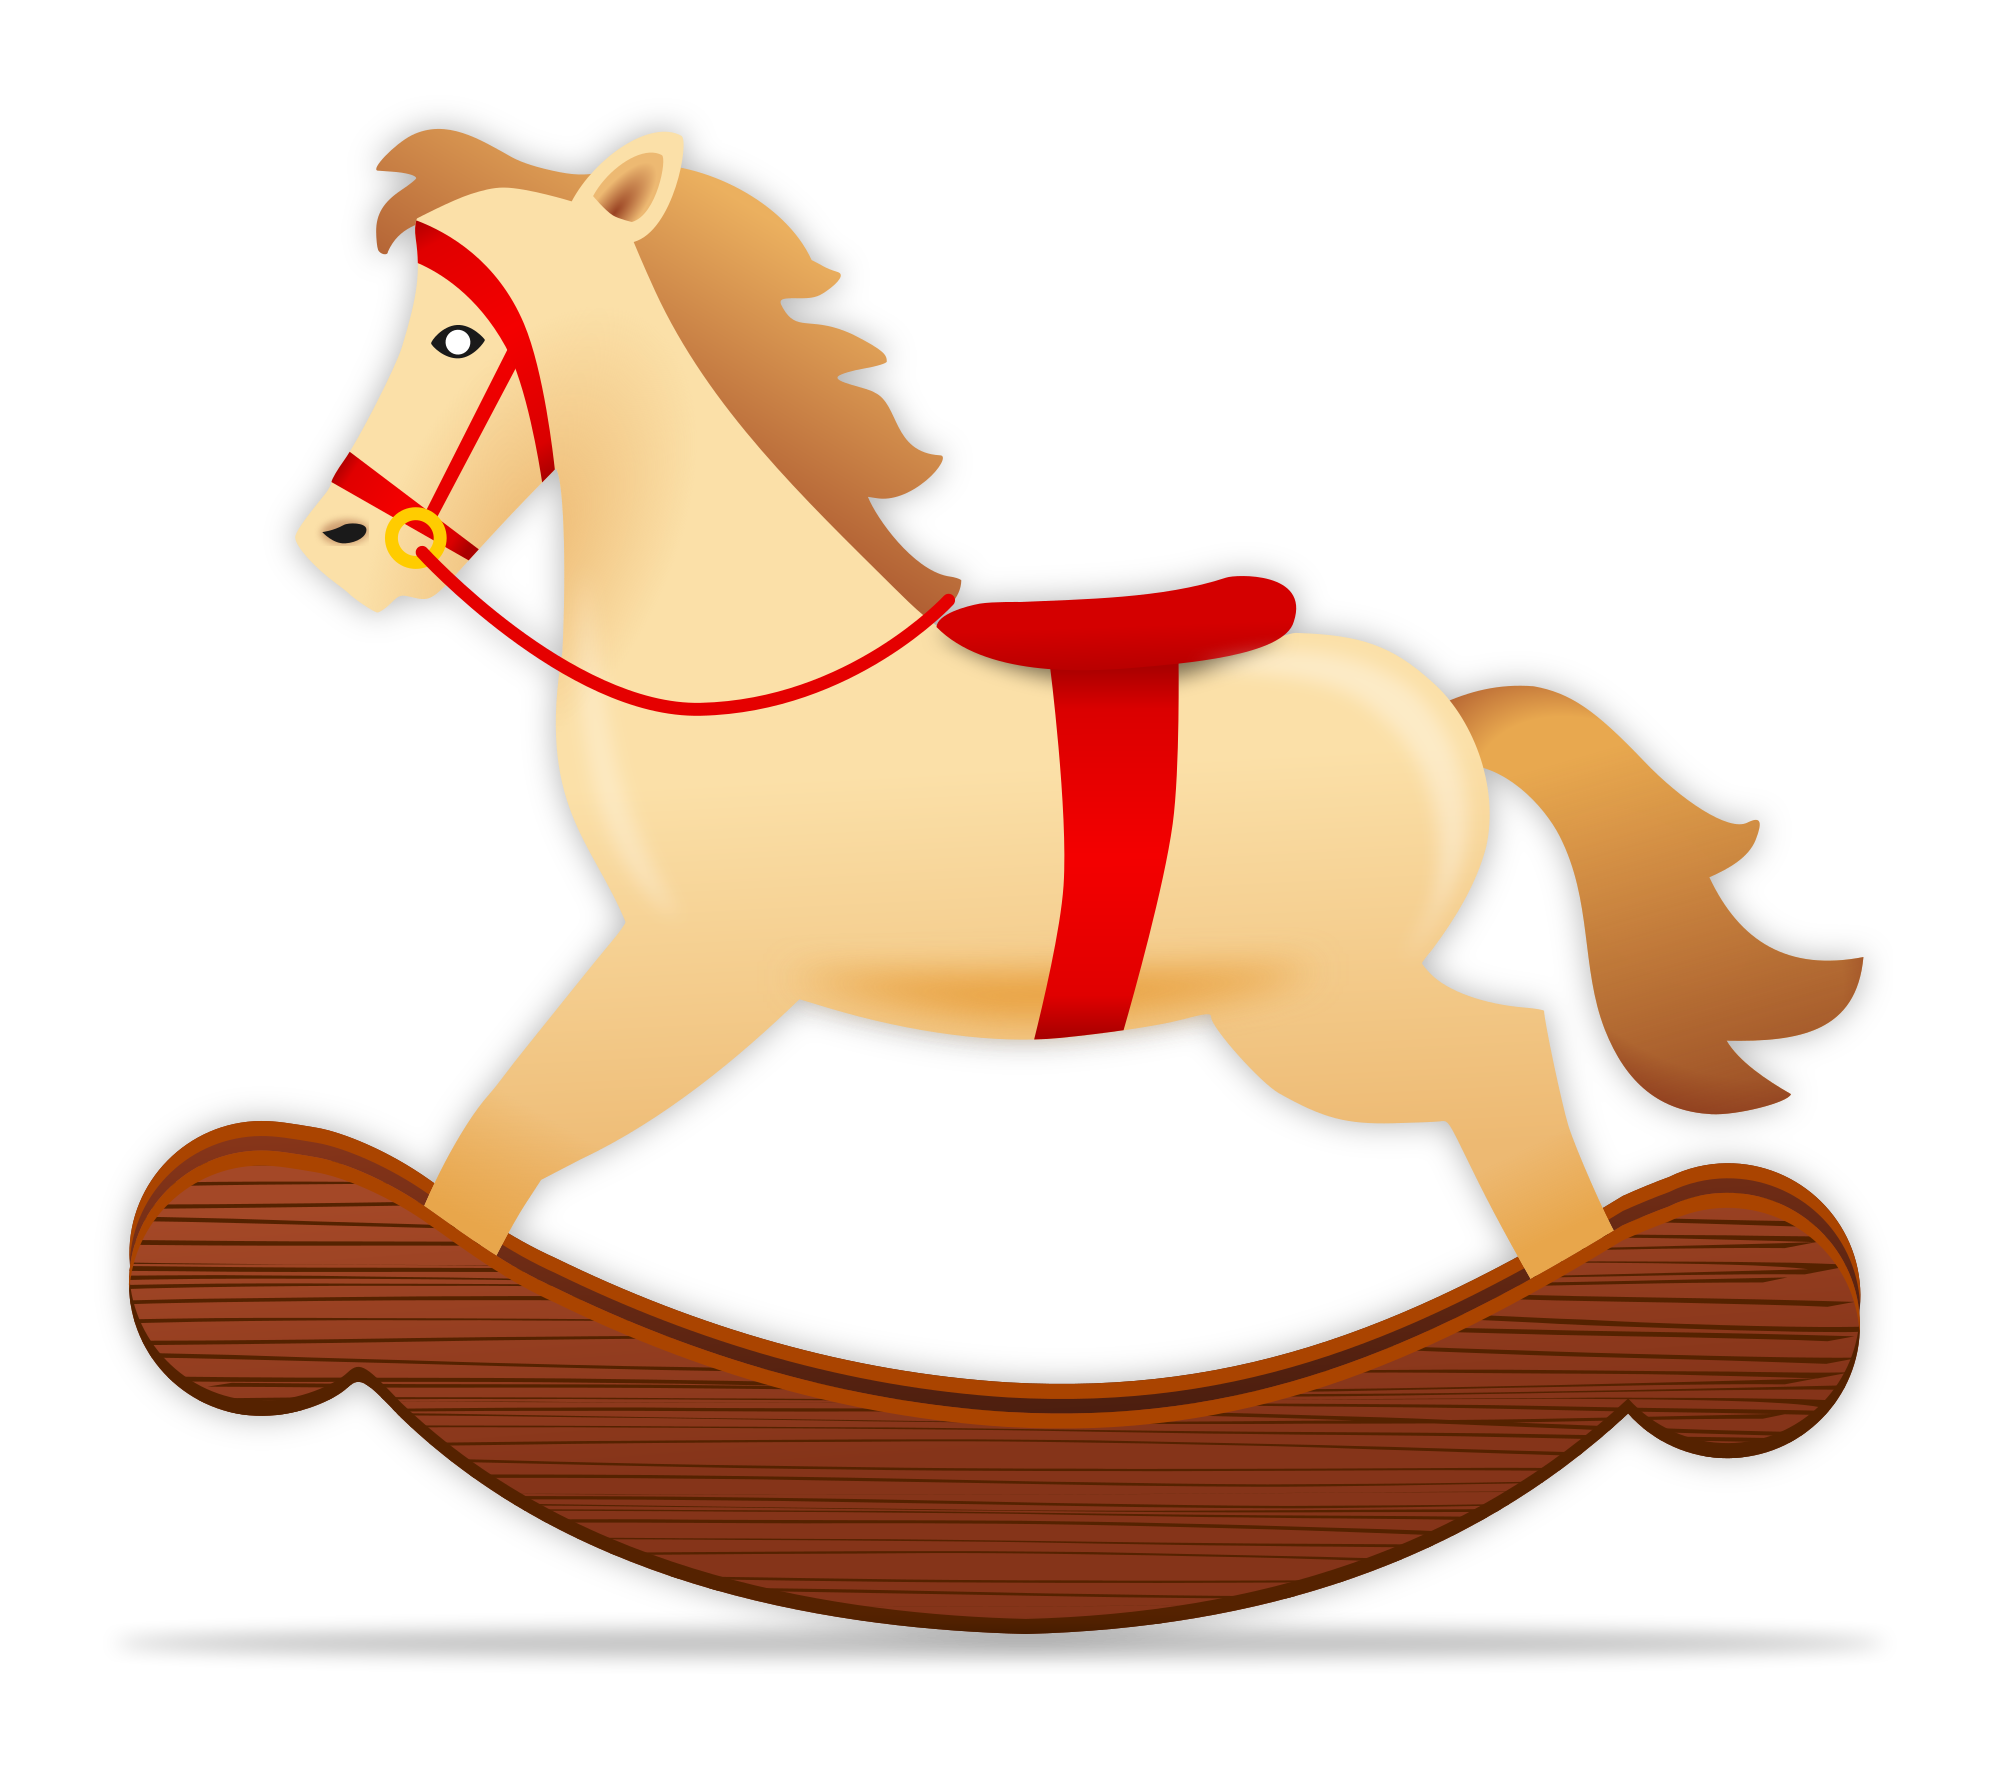 Rocking svg wikimedia commons. Clipart horse file